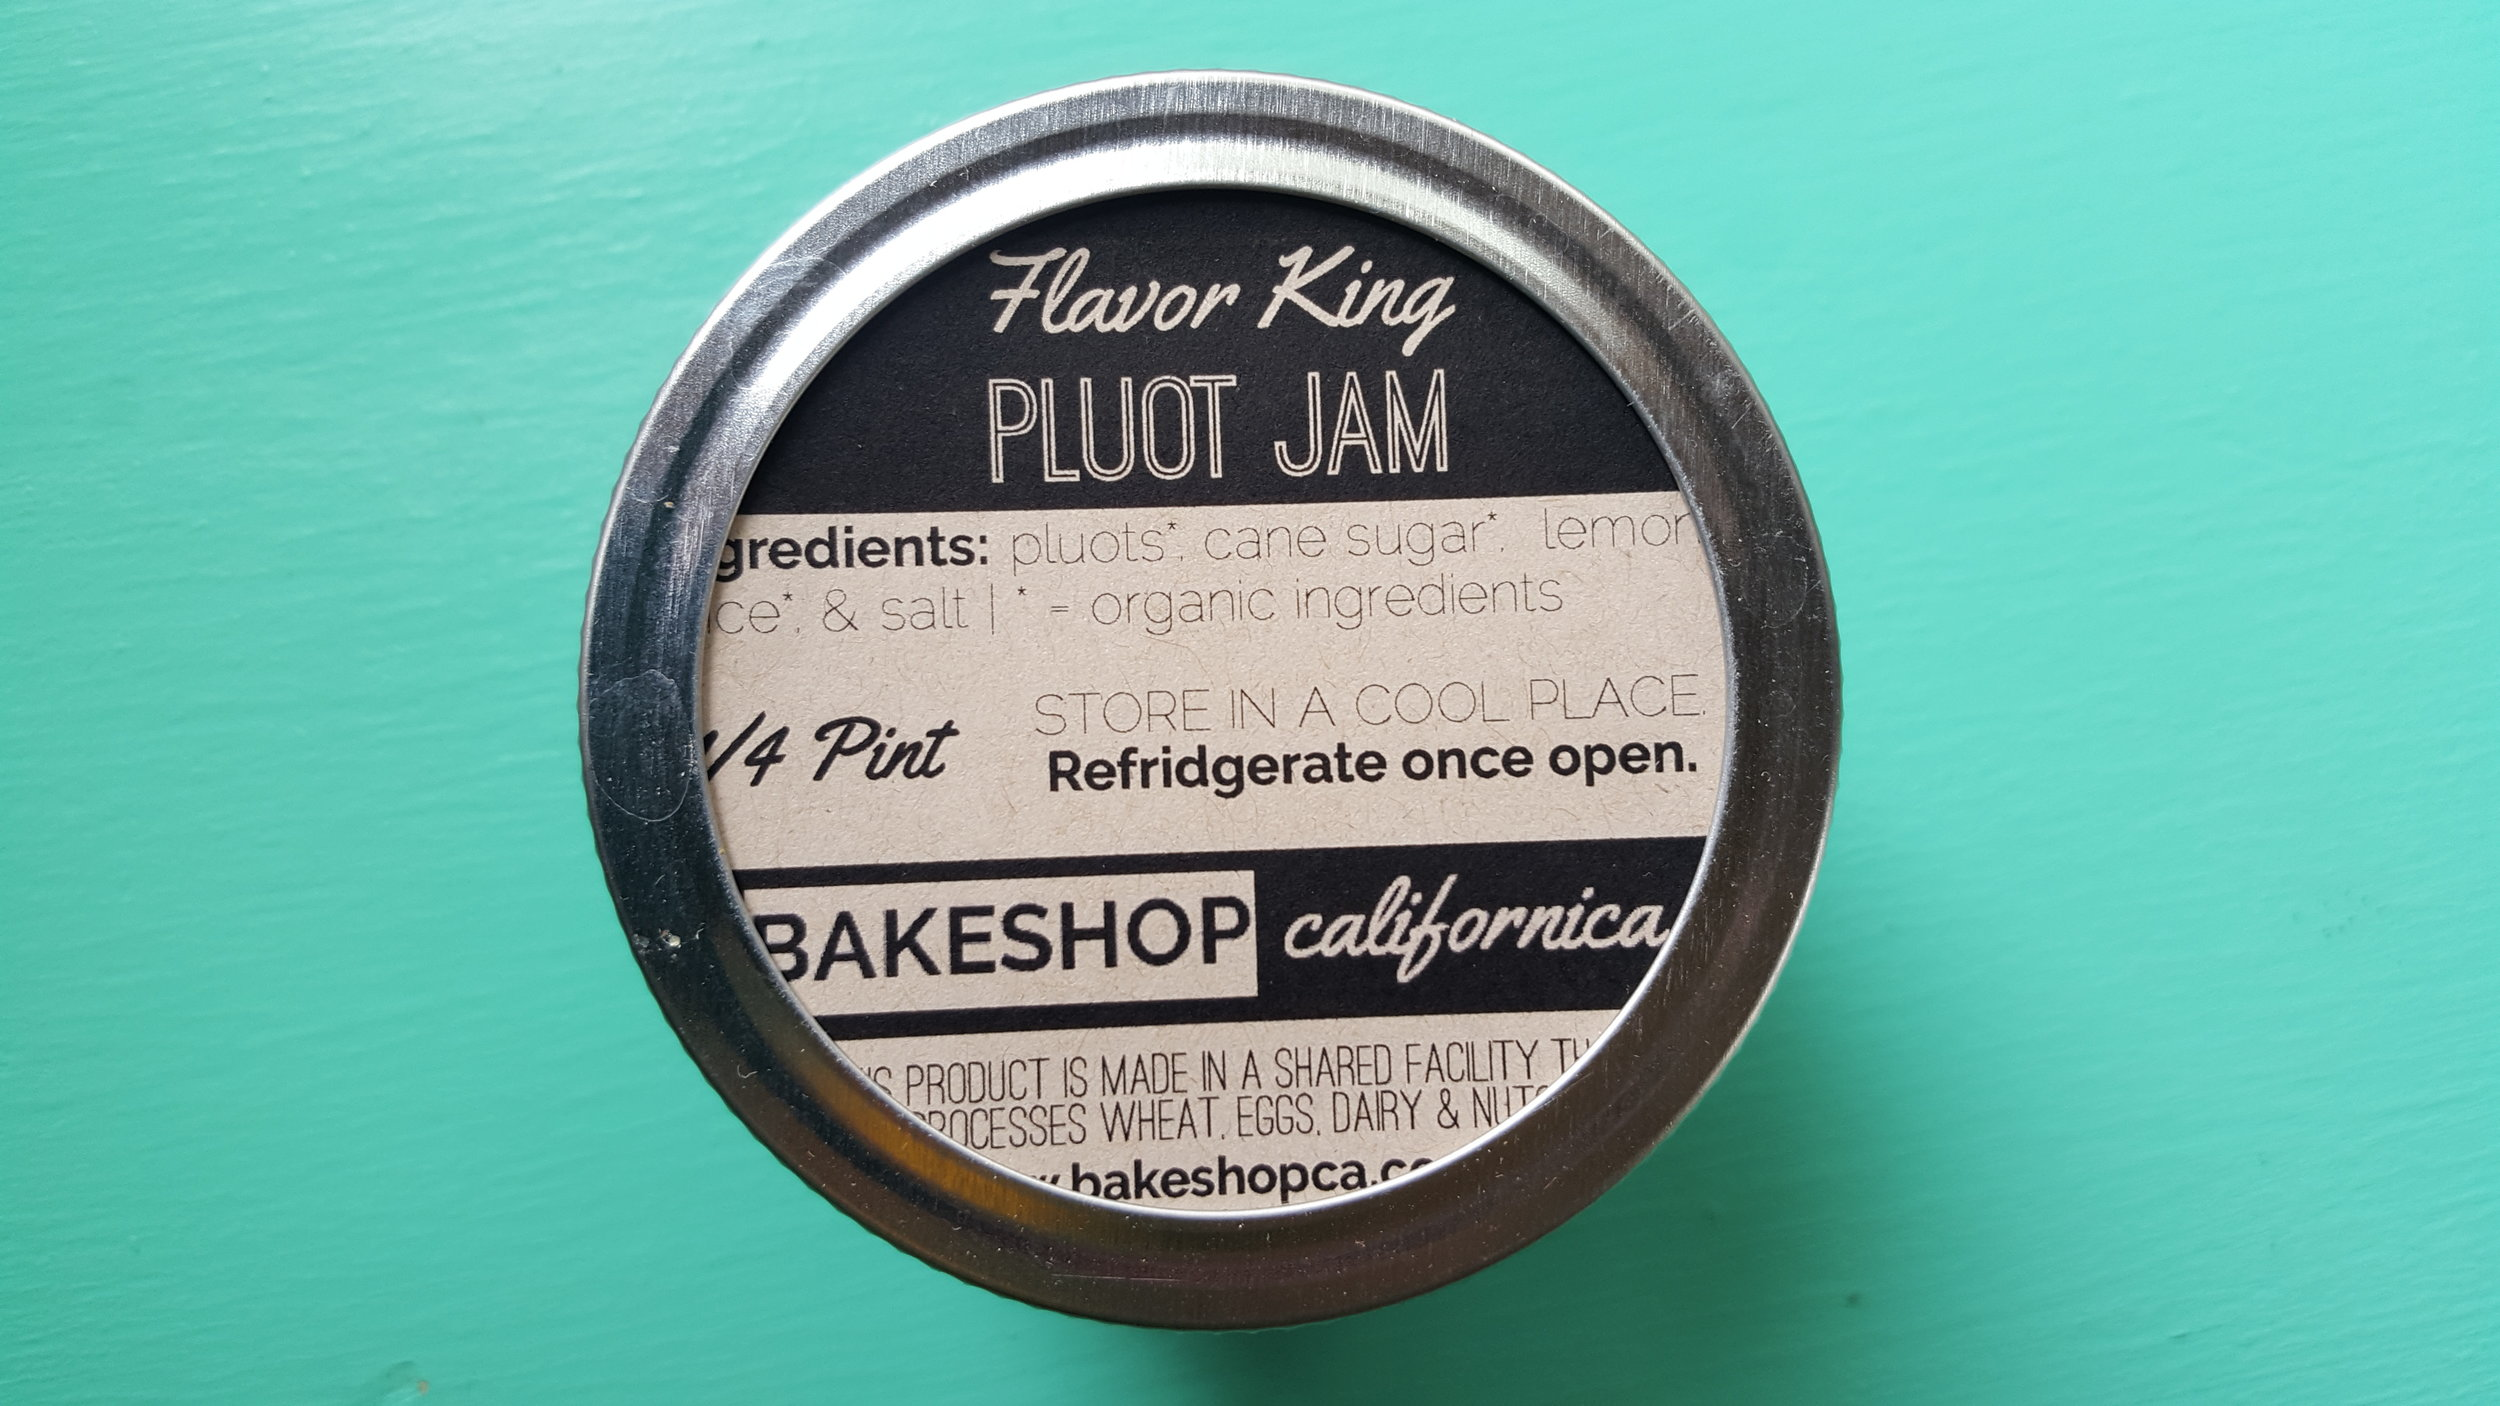 Flavor King Pluot Jam.jpg